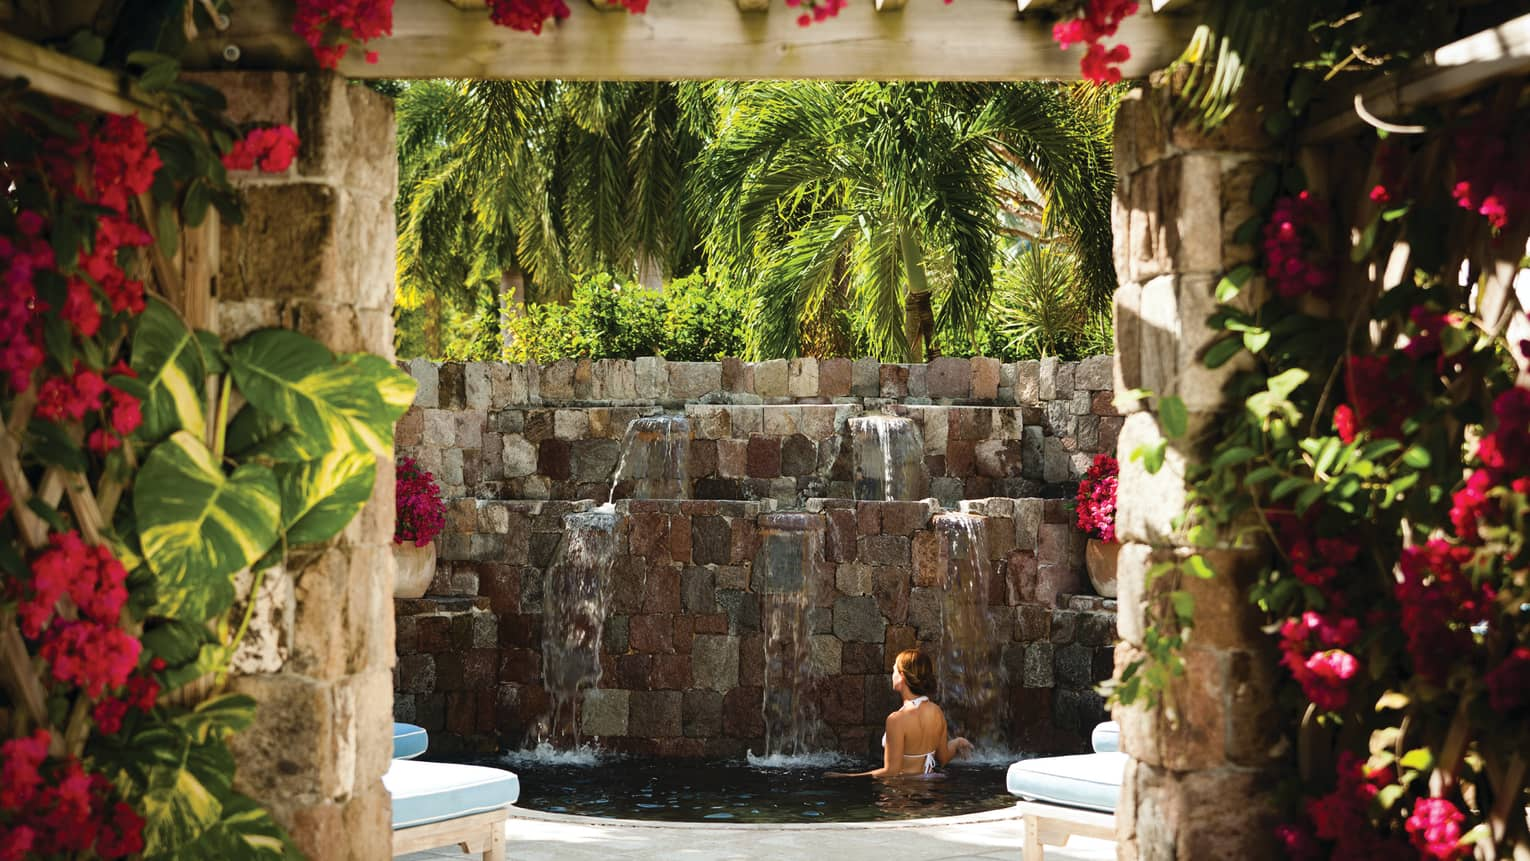 Woman bathes in small pool under stone fountain under palm trees, brick walls with pink flowers